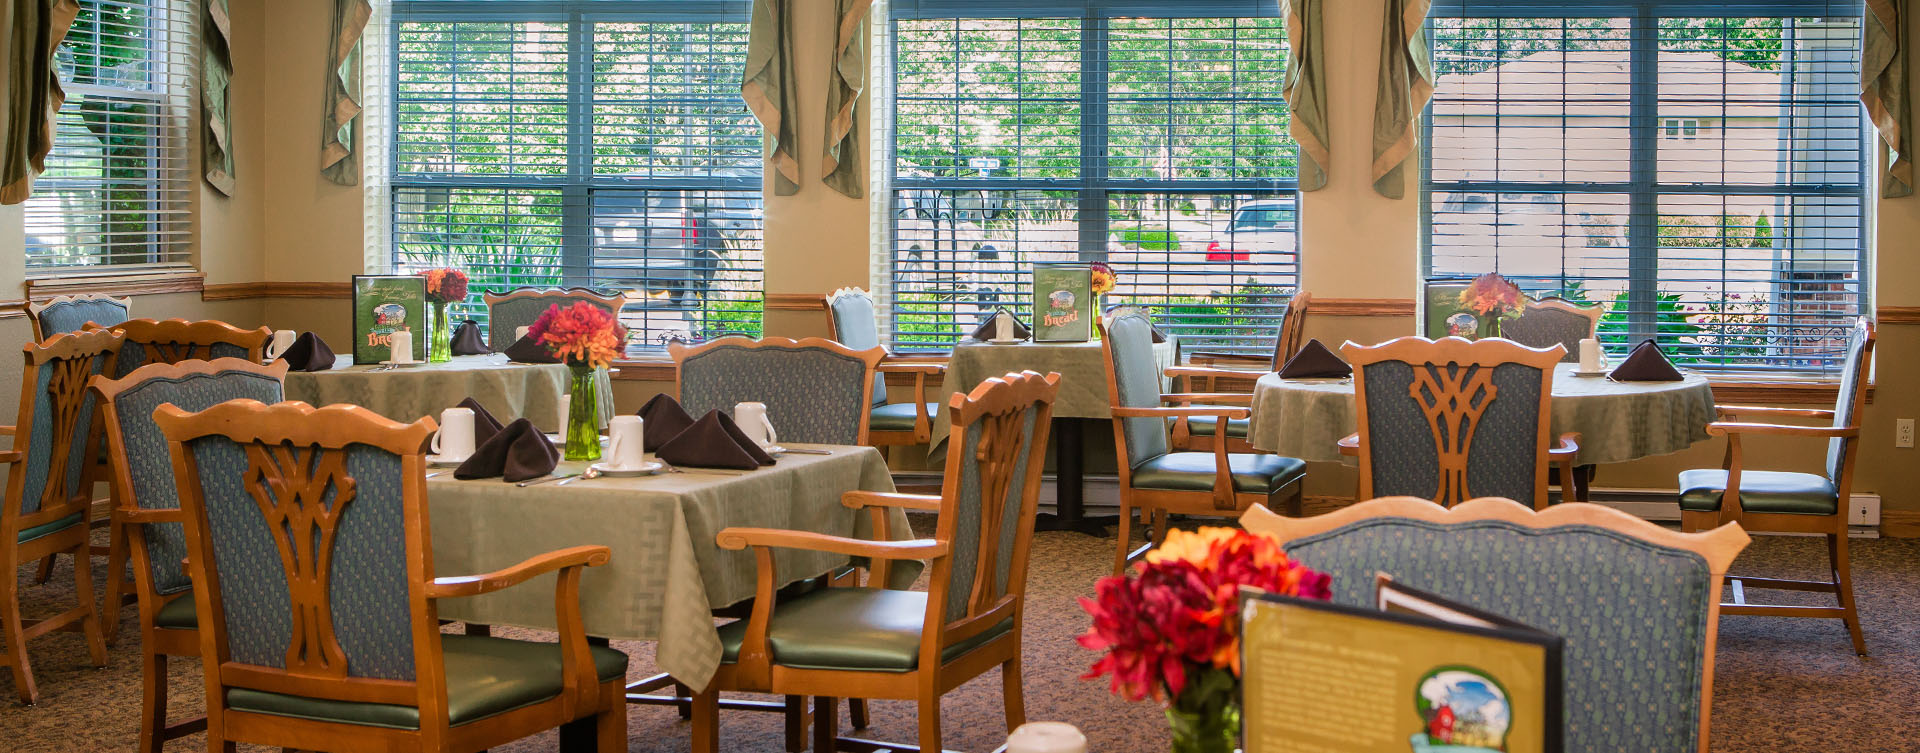 Enjoy restaurant -style meals served three times a day in our dining room at Bickford of Macomb